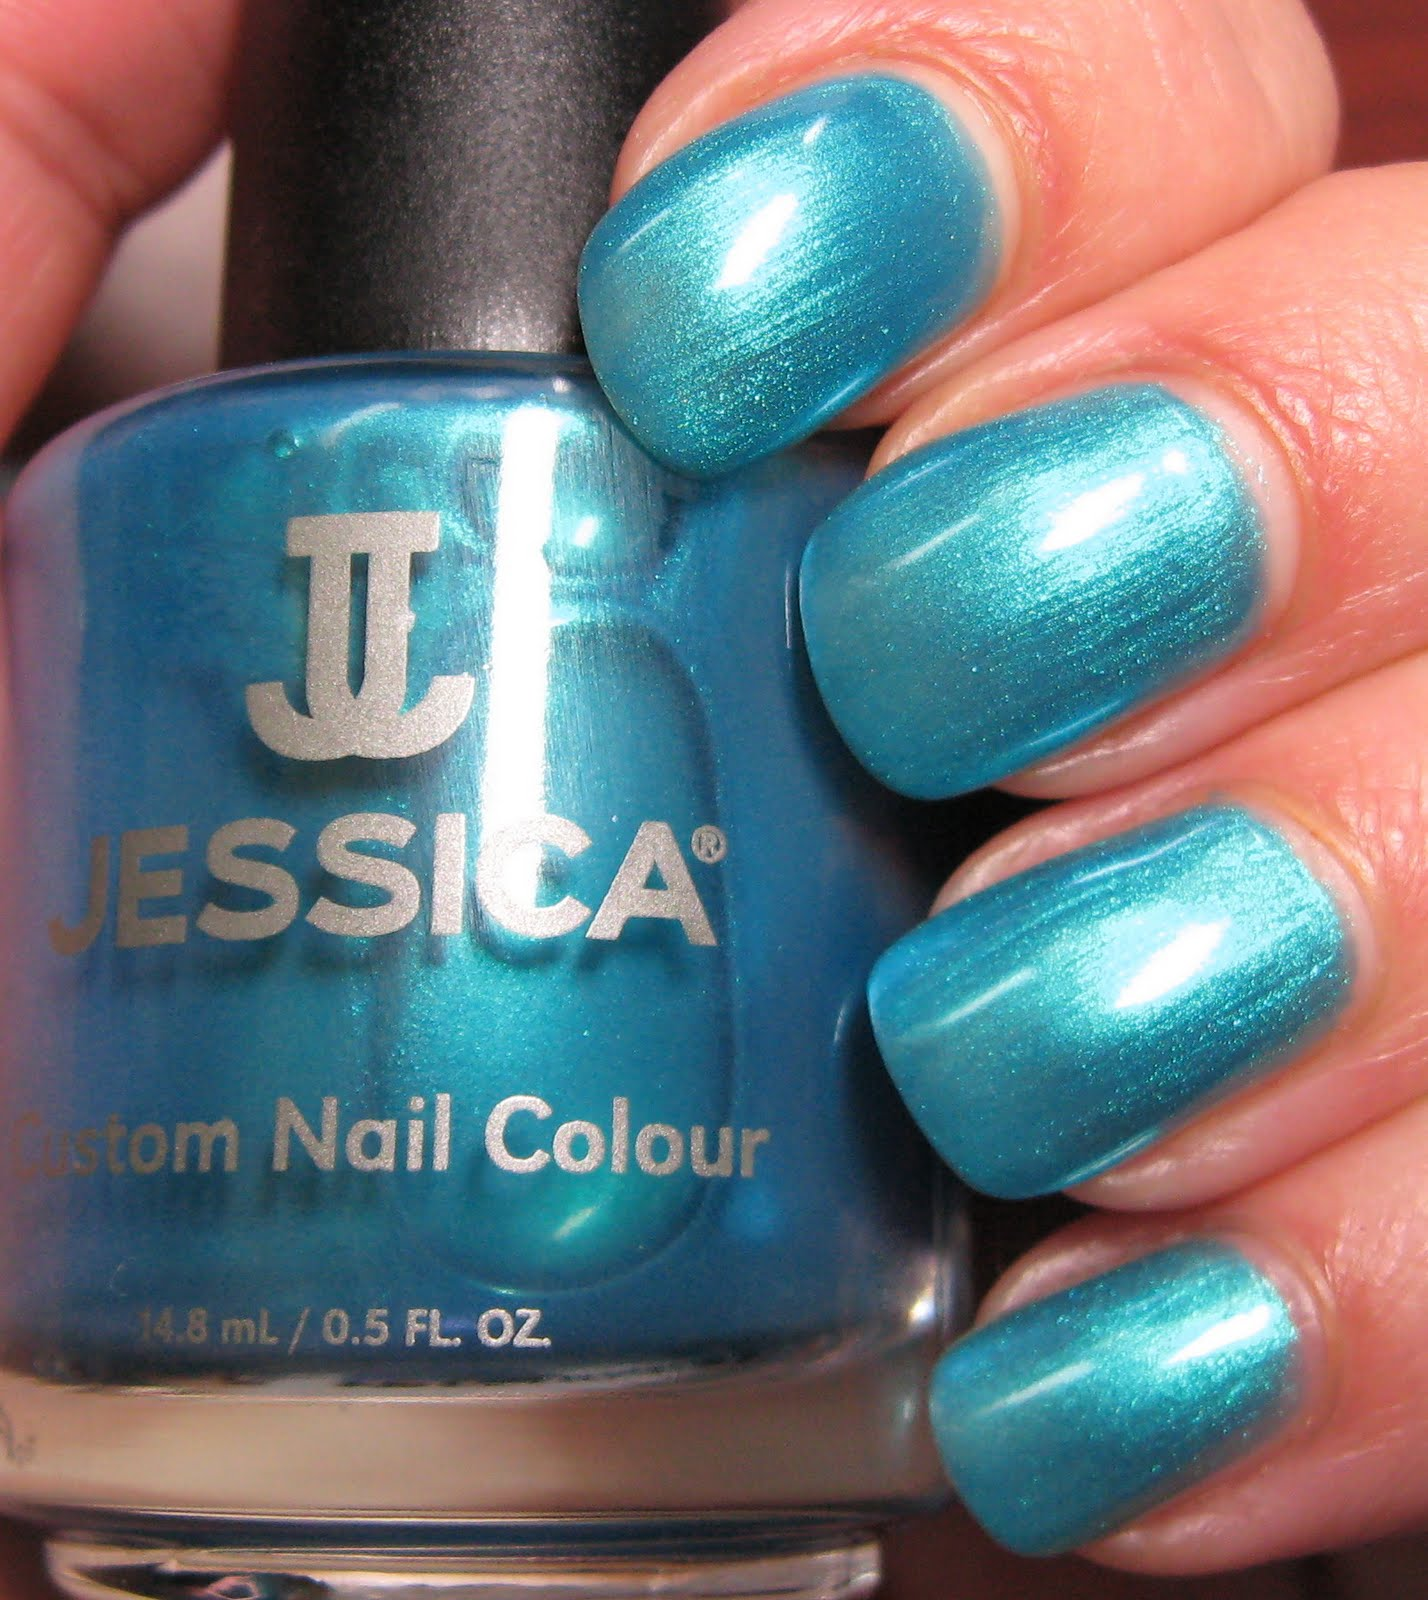 Jessica Electric Summer 2010 Collection Review | Body & Soul